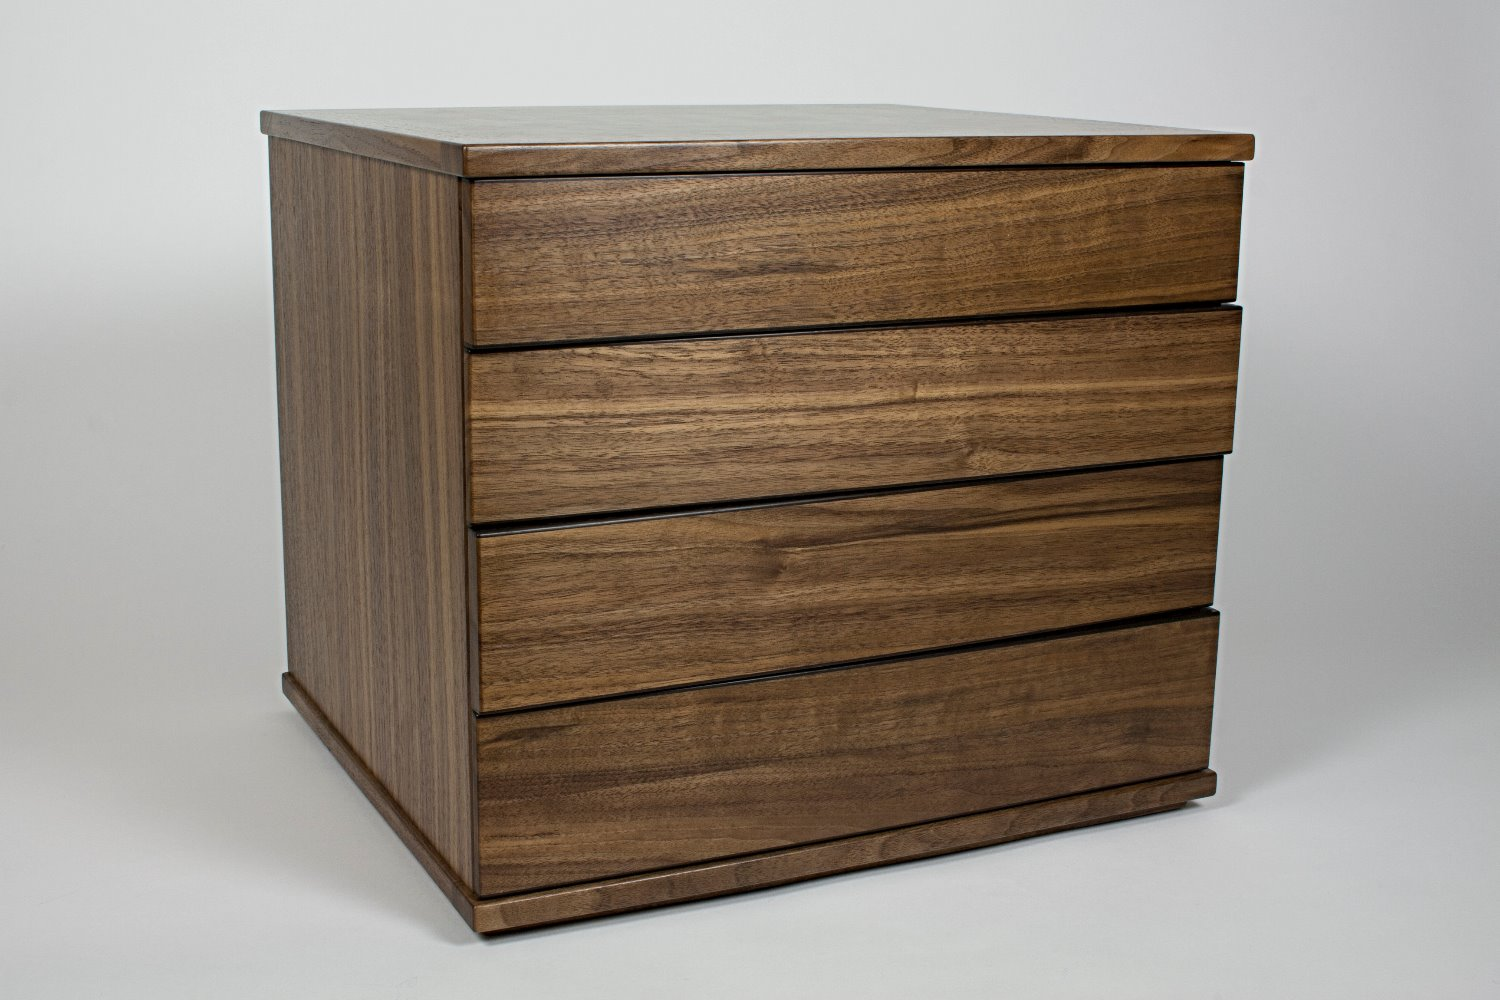 Walnut jewellery chest of drawers